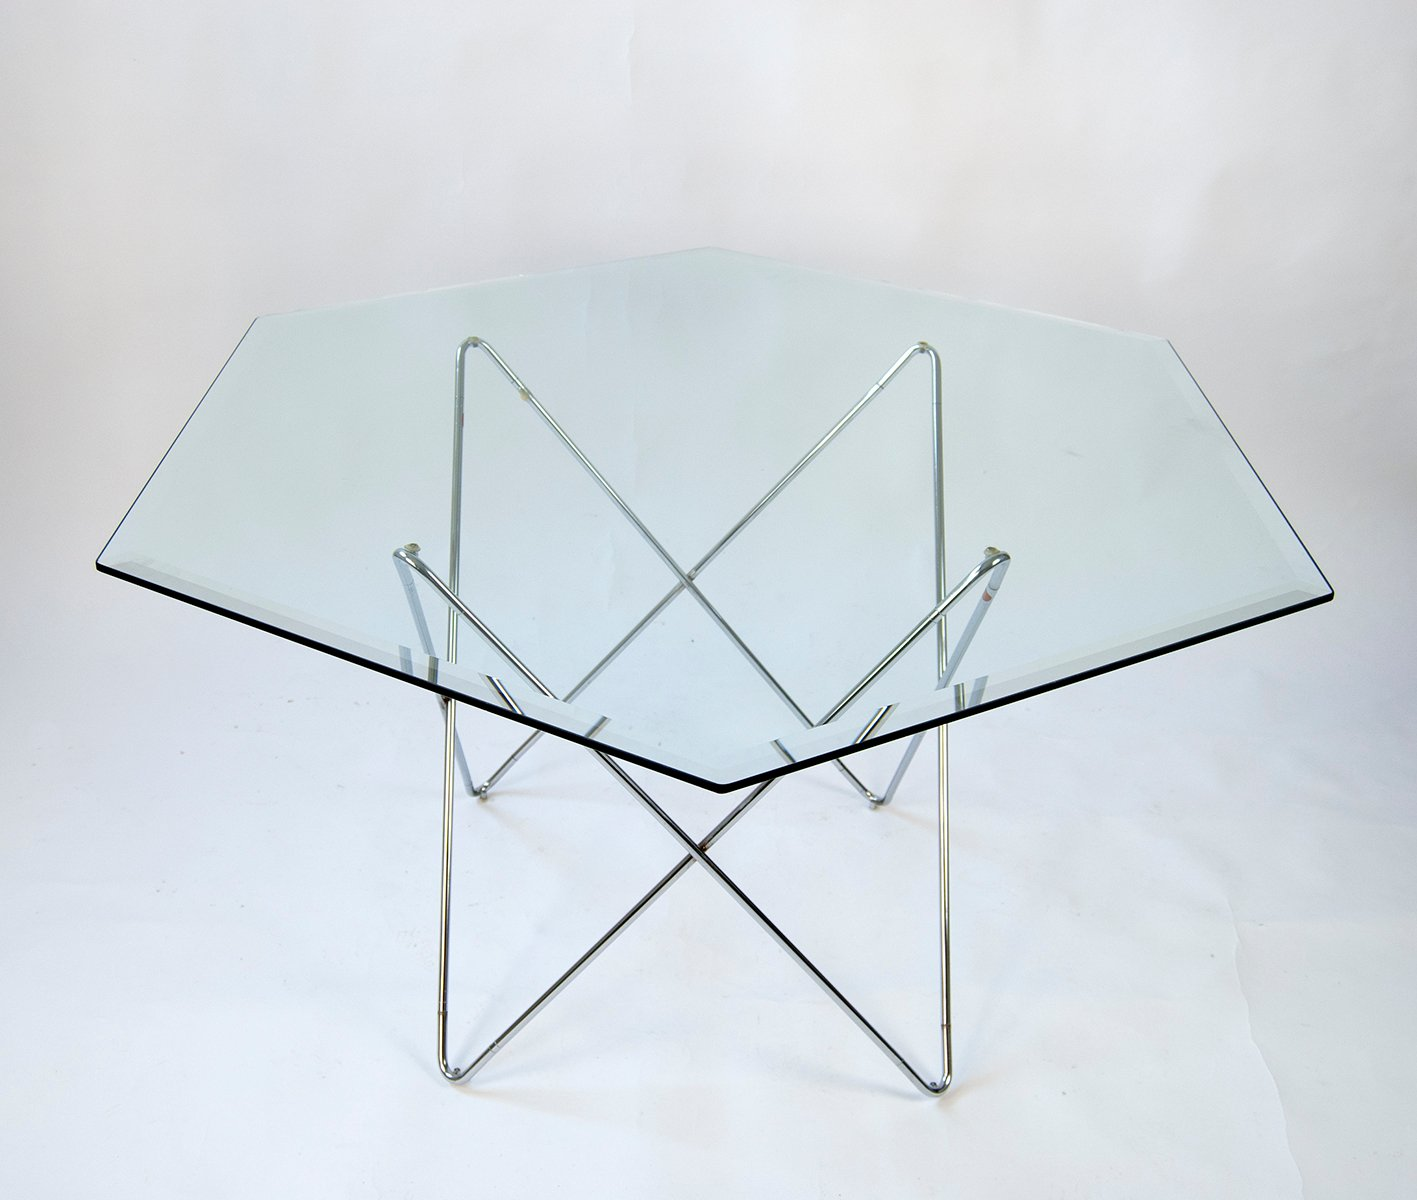 Hexagon Glass Dining Table S For Sale At Pamono - Hexagon glass dining table